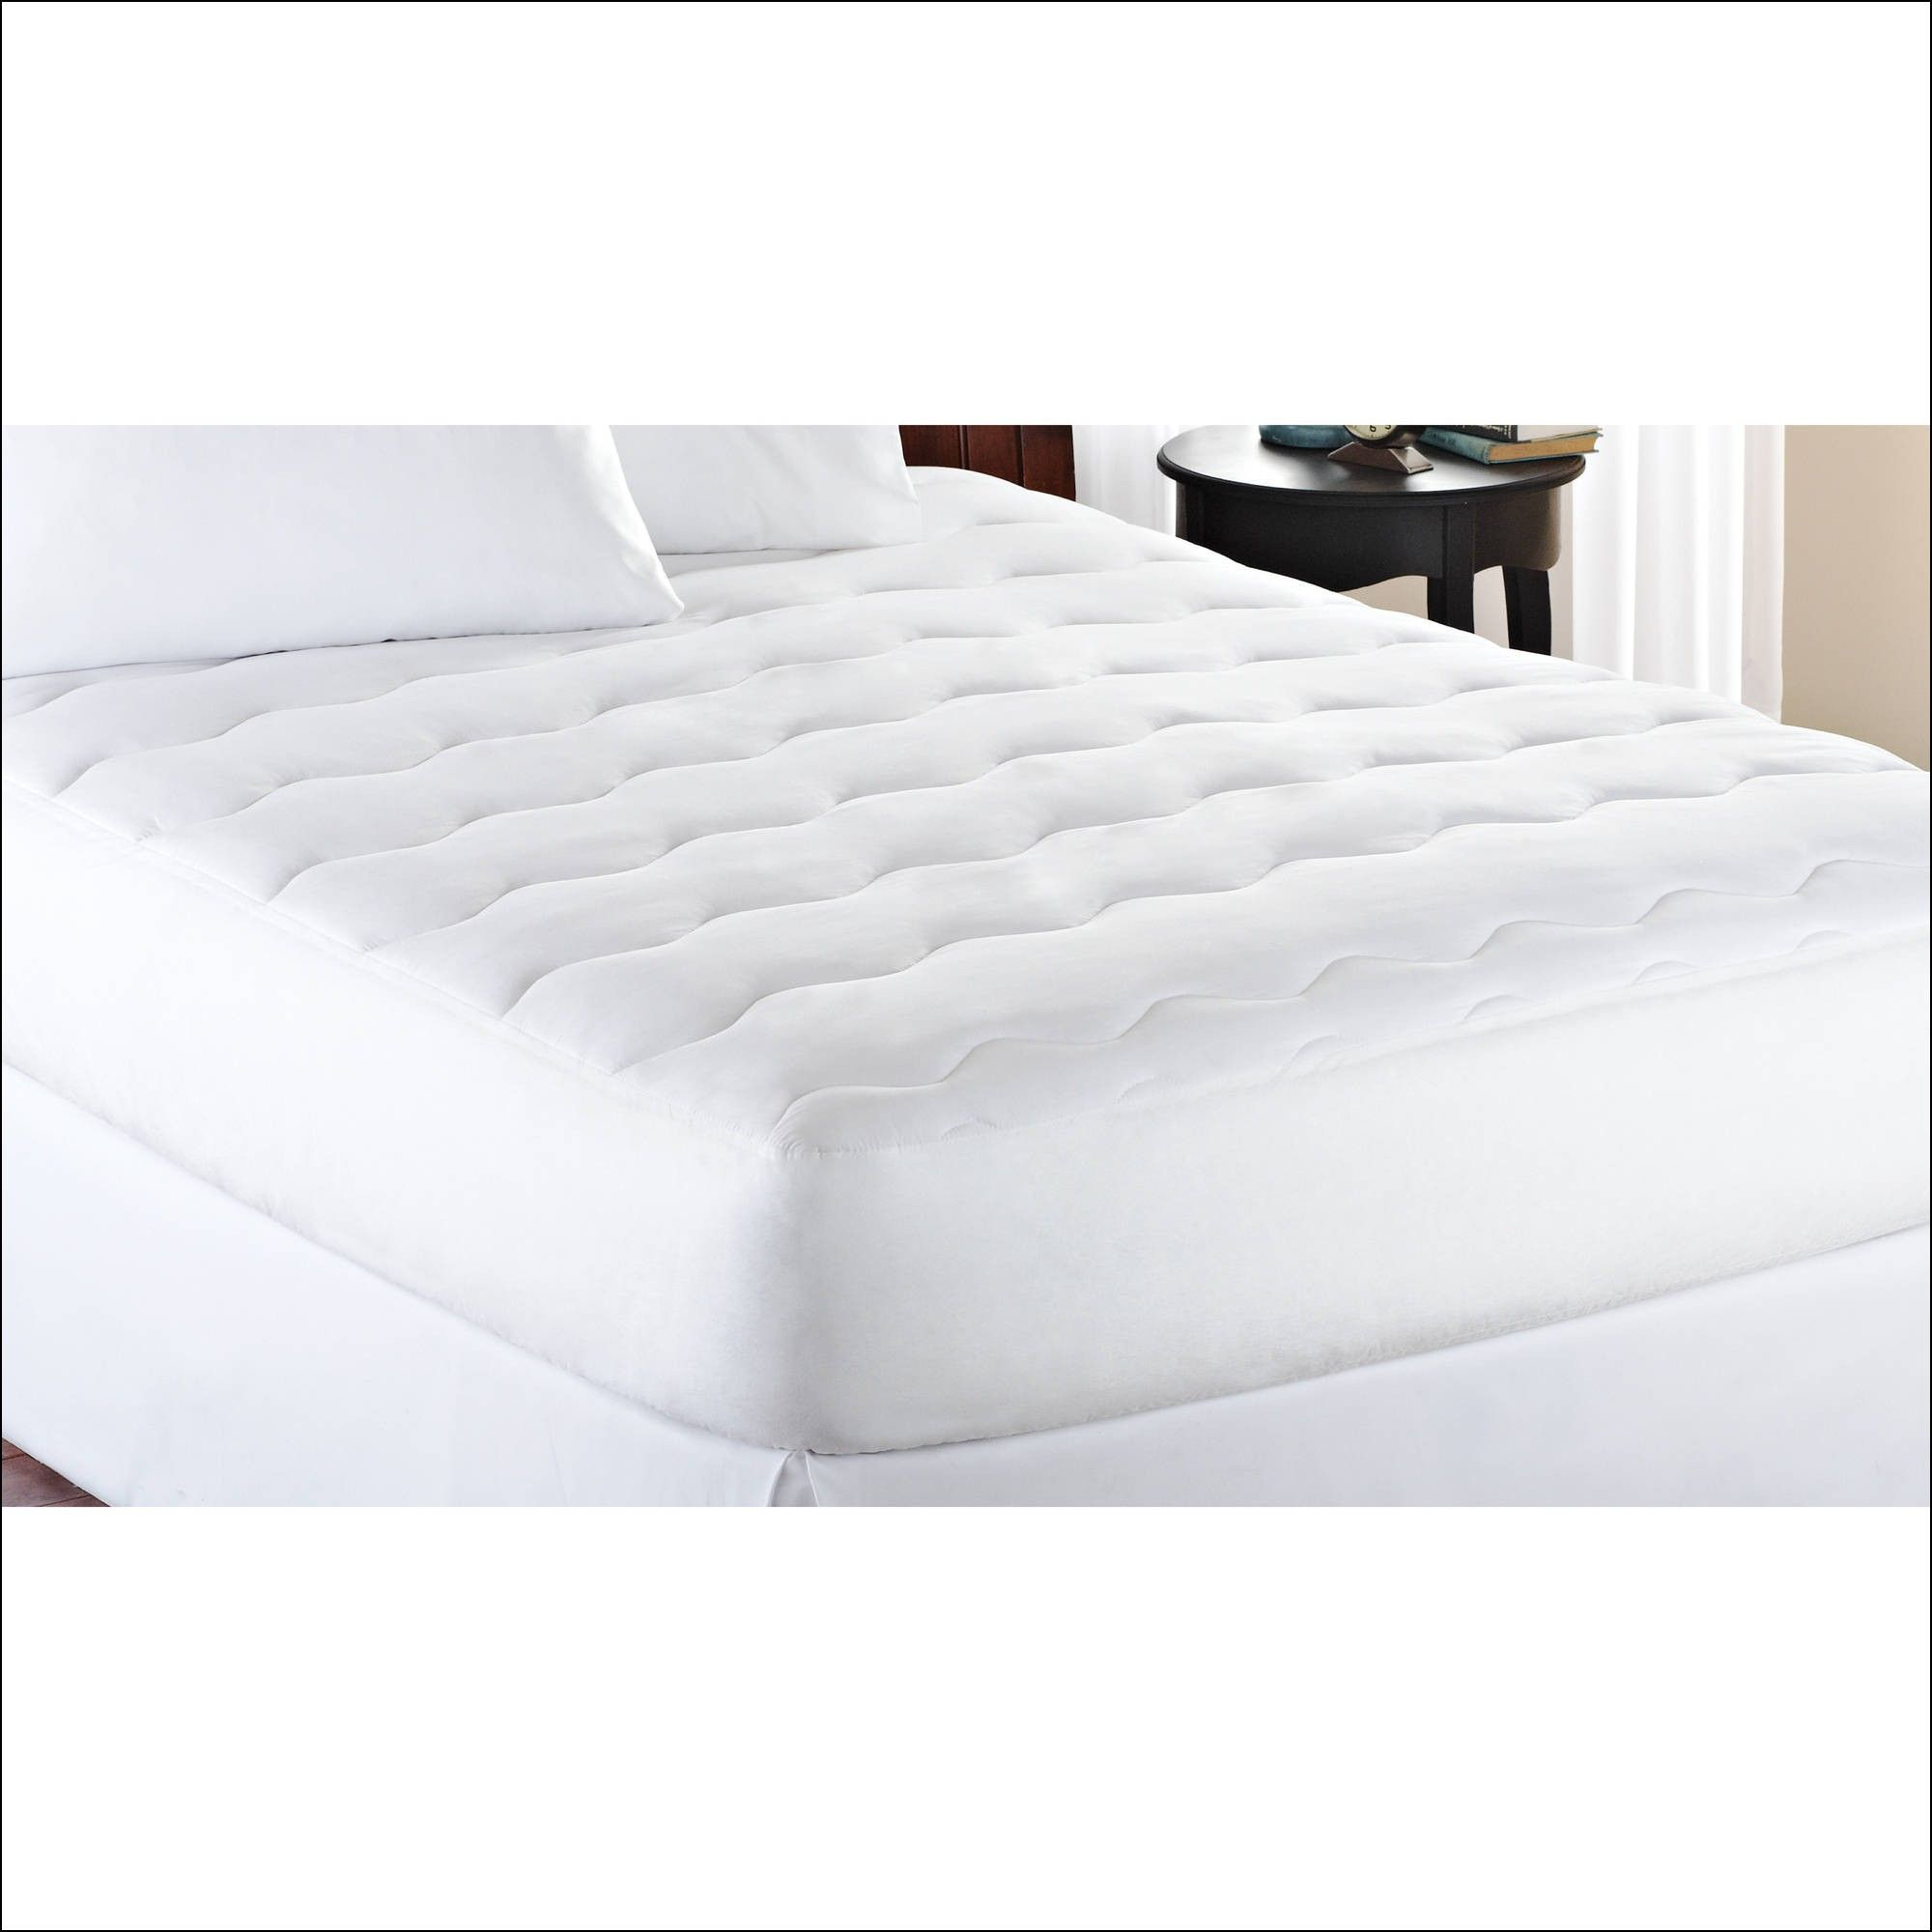 signature img htm zoom hover top mattress next select day to bedmaster p topper pillow